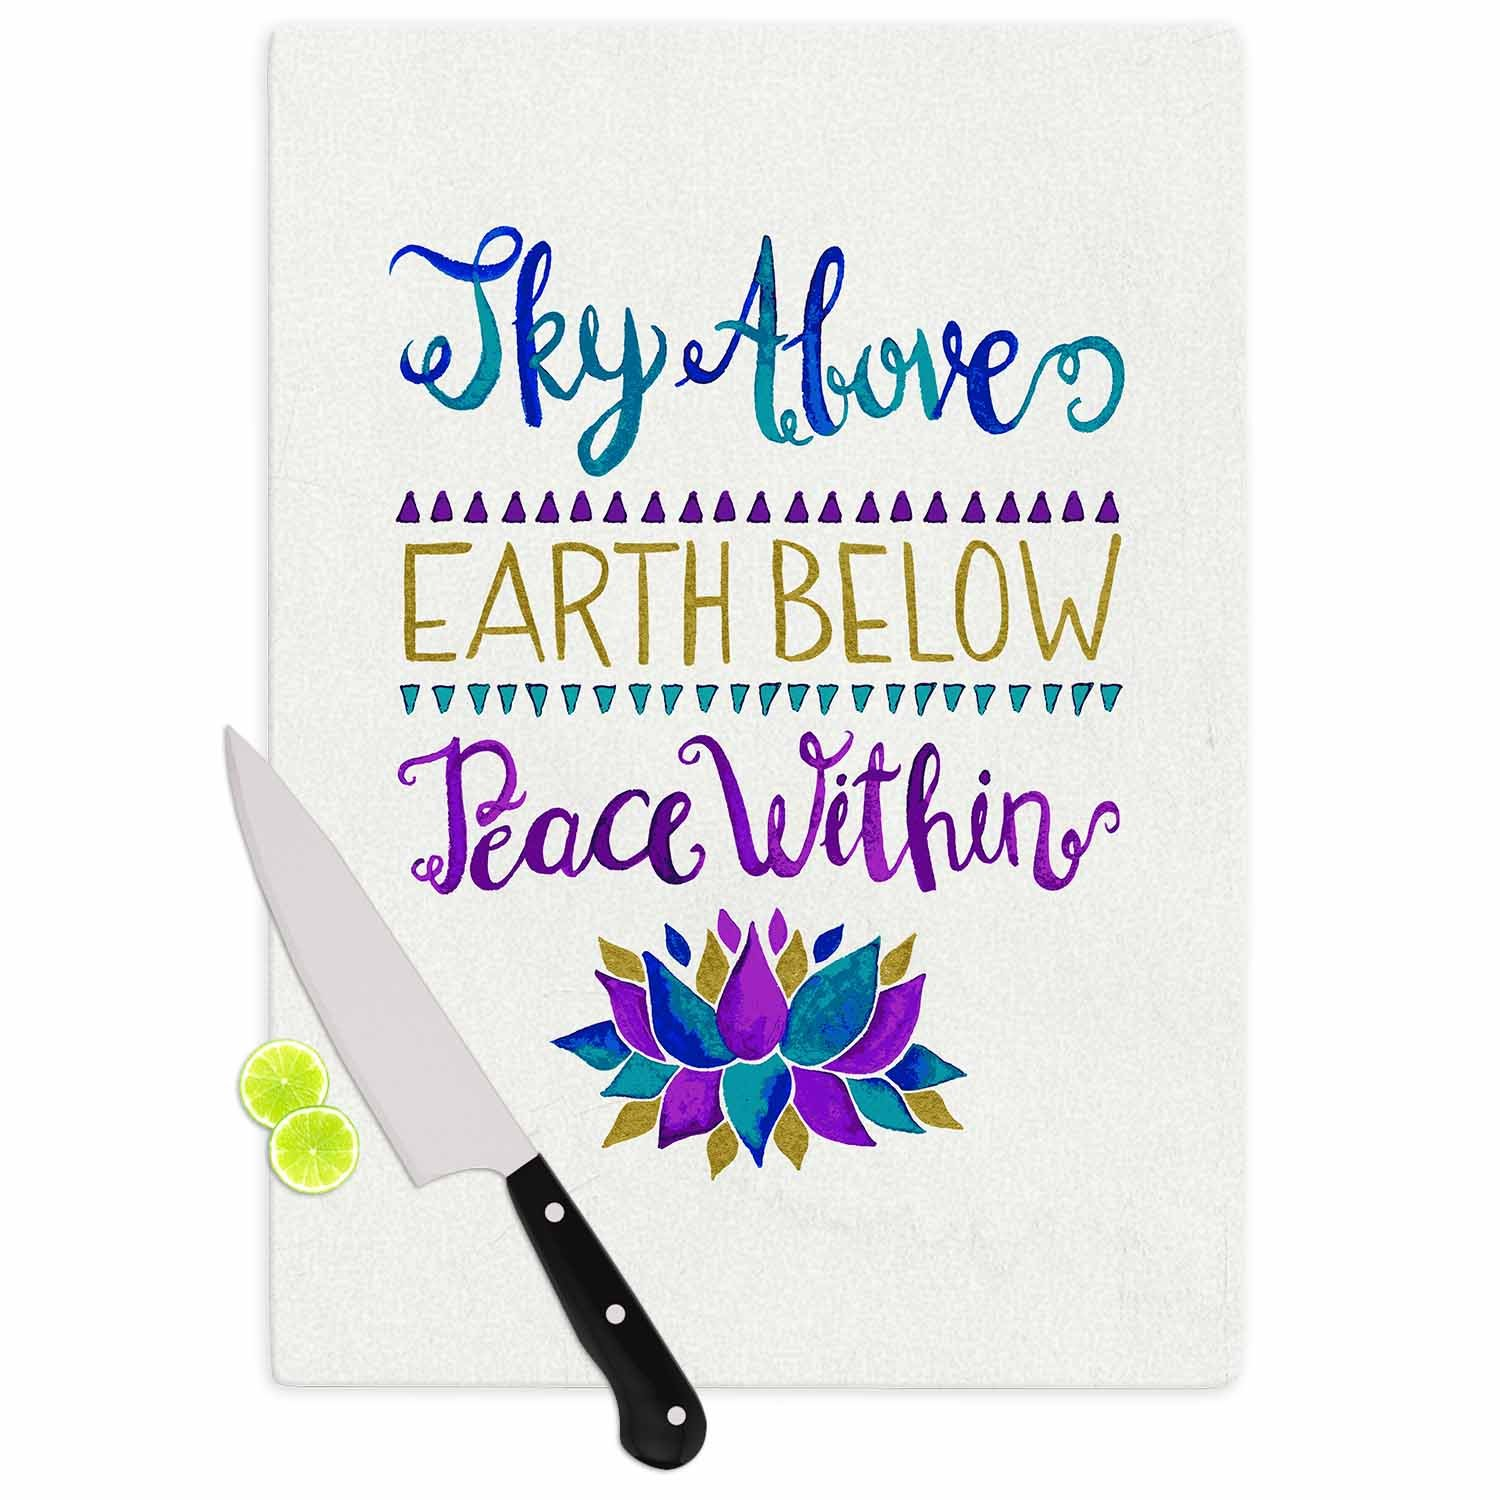 11.5 x 8.25 KESS InHouse Pom Graphic DesignSky Above Peace Within Purple Blue Typography Cutting Board Multicolor